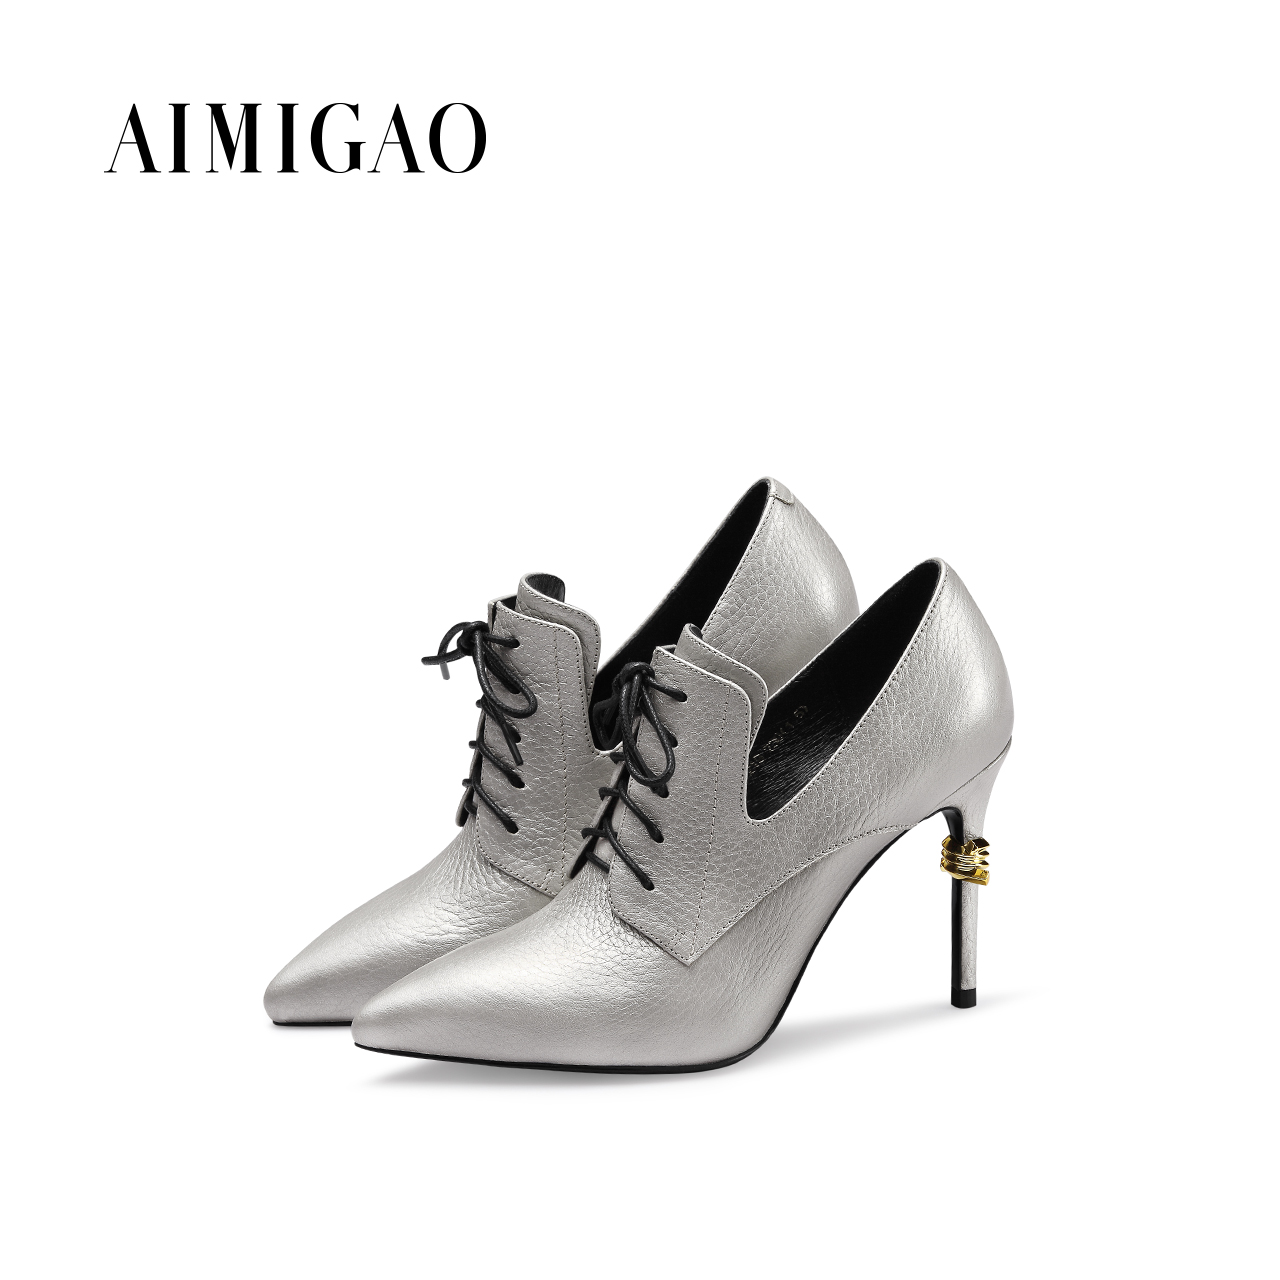 AIMIGAO Fashion lace-up boots women 2017 new sexy thin high heel women boots Genuine Leather pointed ankle boots autumn winter jialuowei women sexy fashion shoes lace up knee high thin high heel platform thigh high boots pointed stiletto zip leather boots